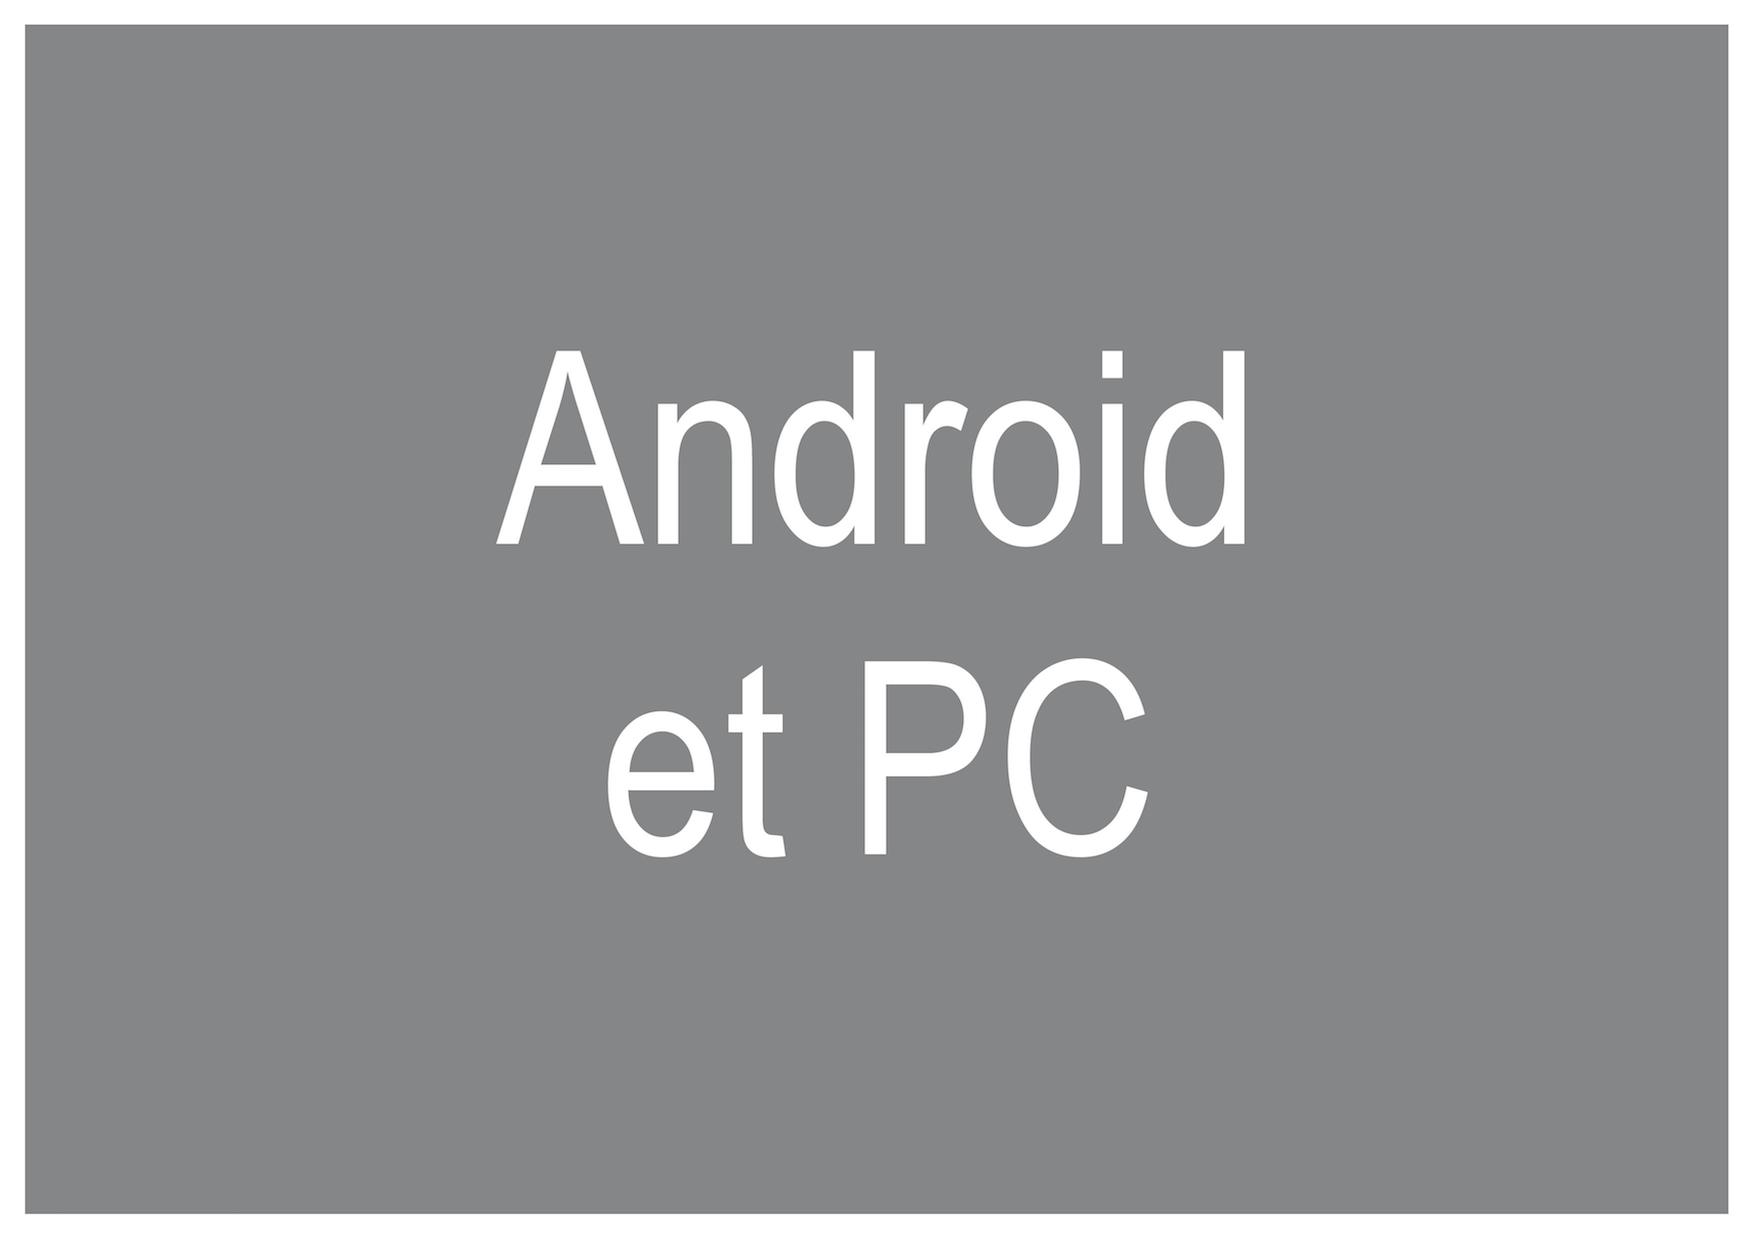 Android et PC